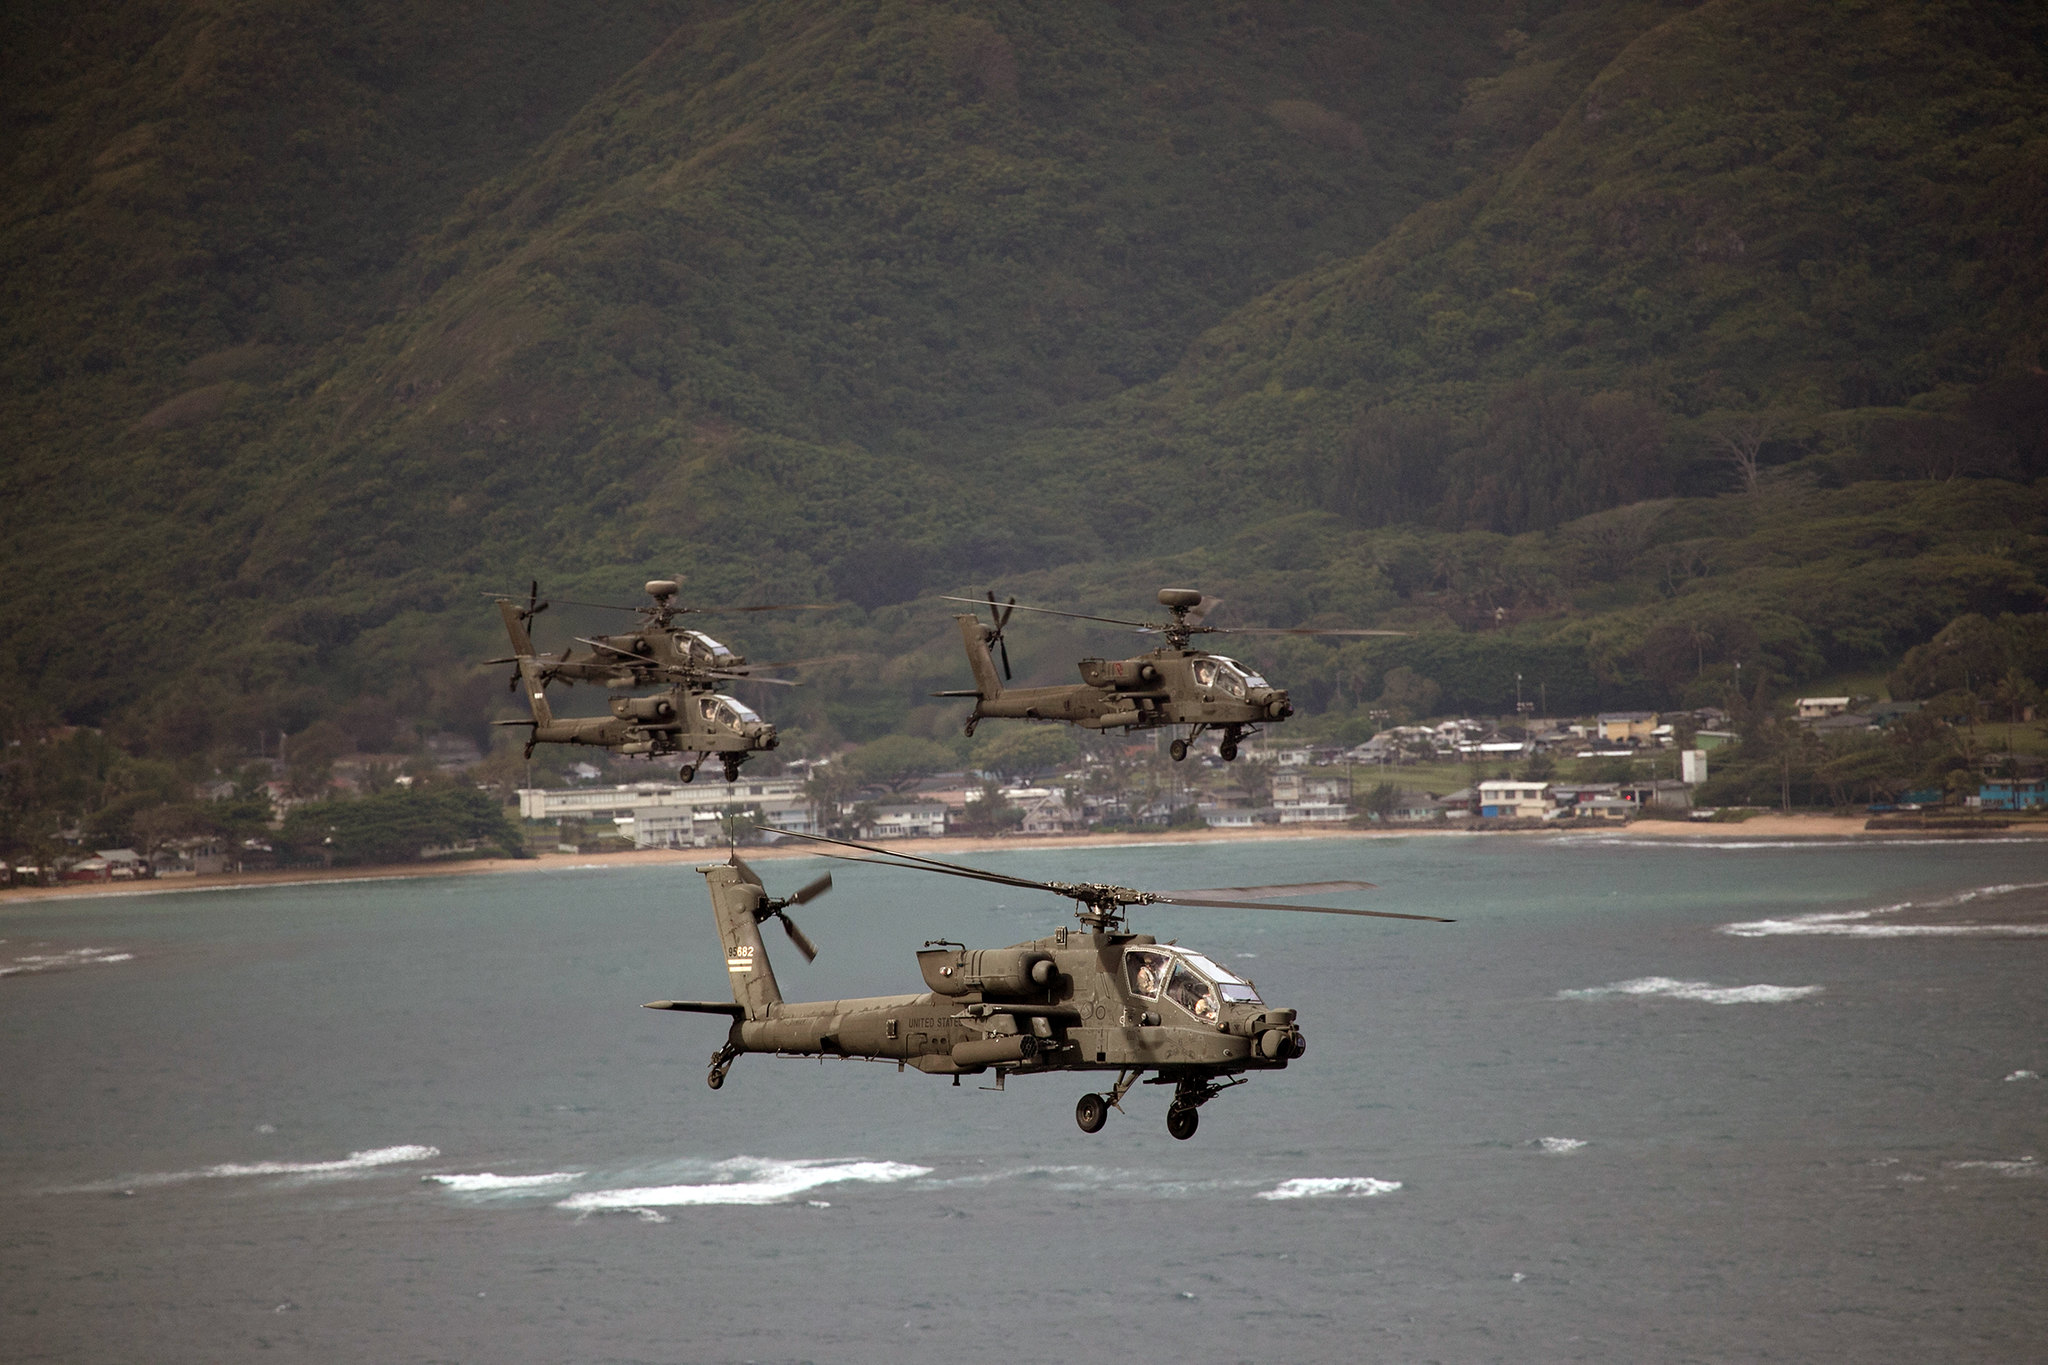 The 25th Combat Aviation Brigade, 25th Infantry Division flies 19 AH-64 Apache helicopters in an organized formation around Oahu on May 1, 2019. (Sgt. Ryan Jenkins/Army)